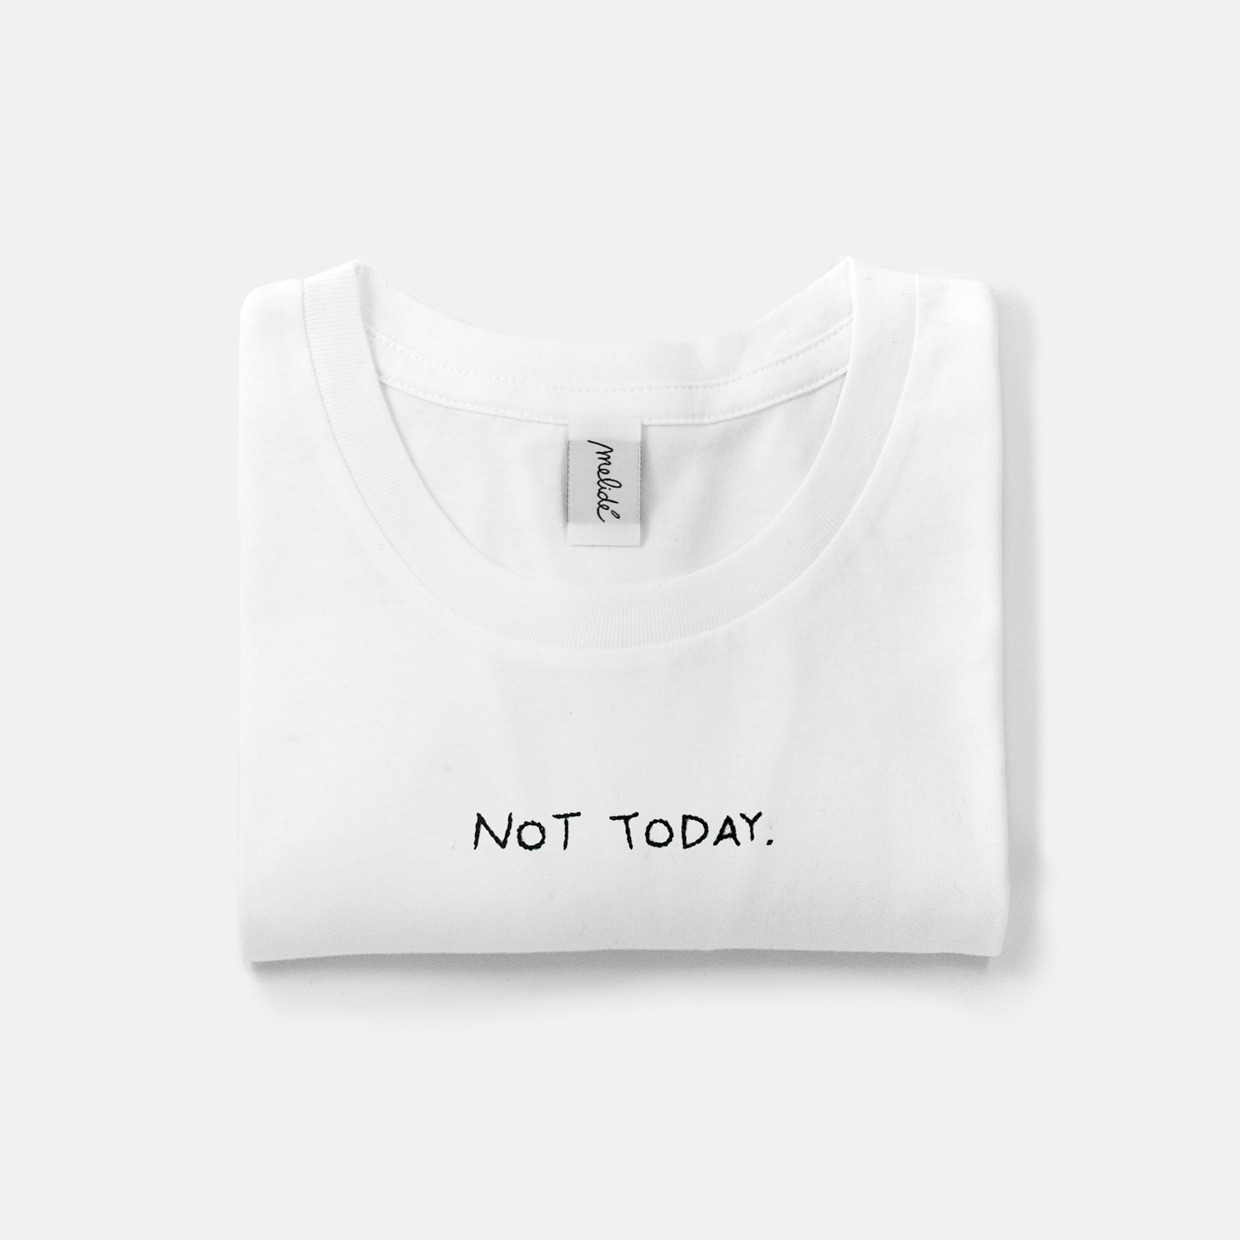 The NOT TODAY Ultimate Woman Tee